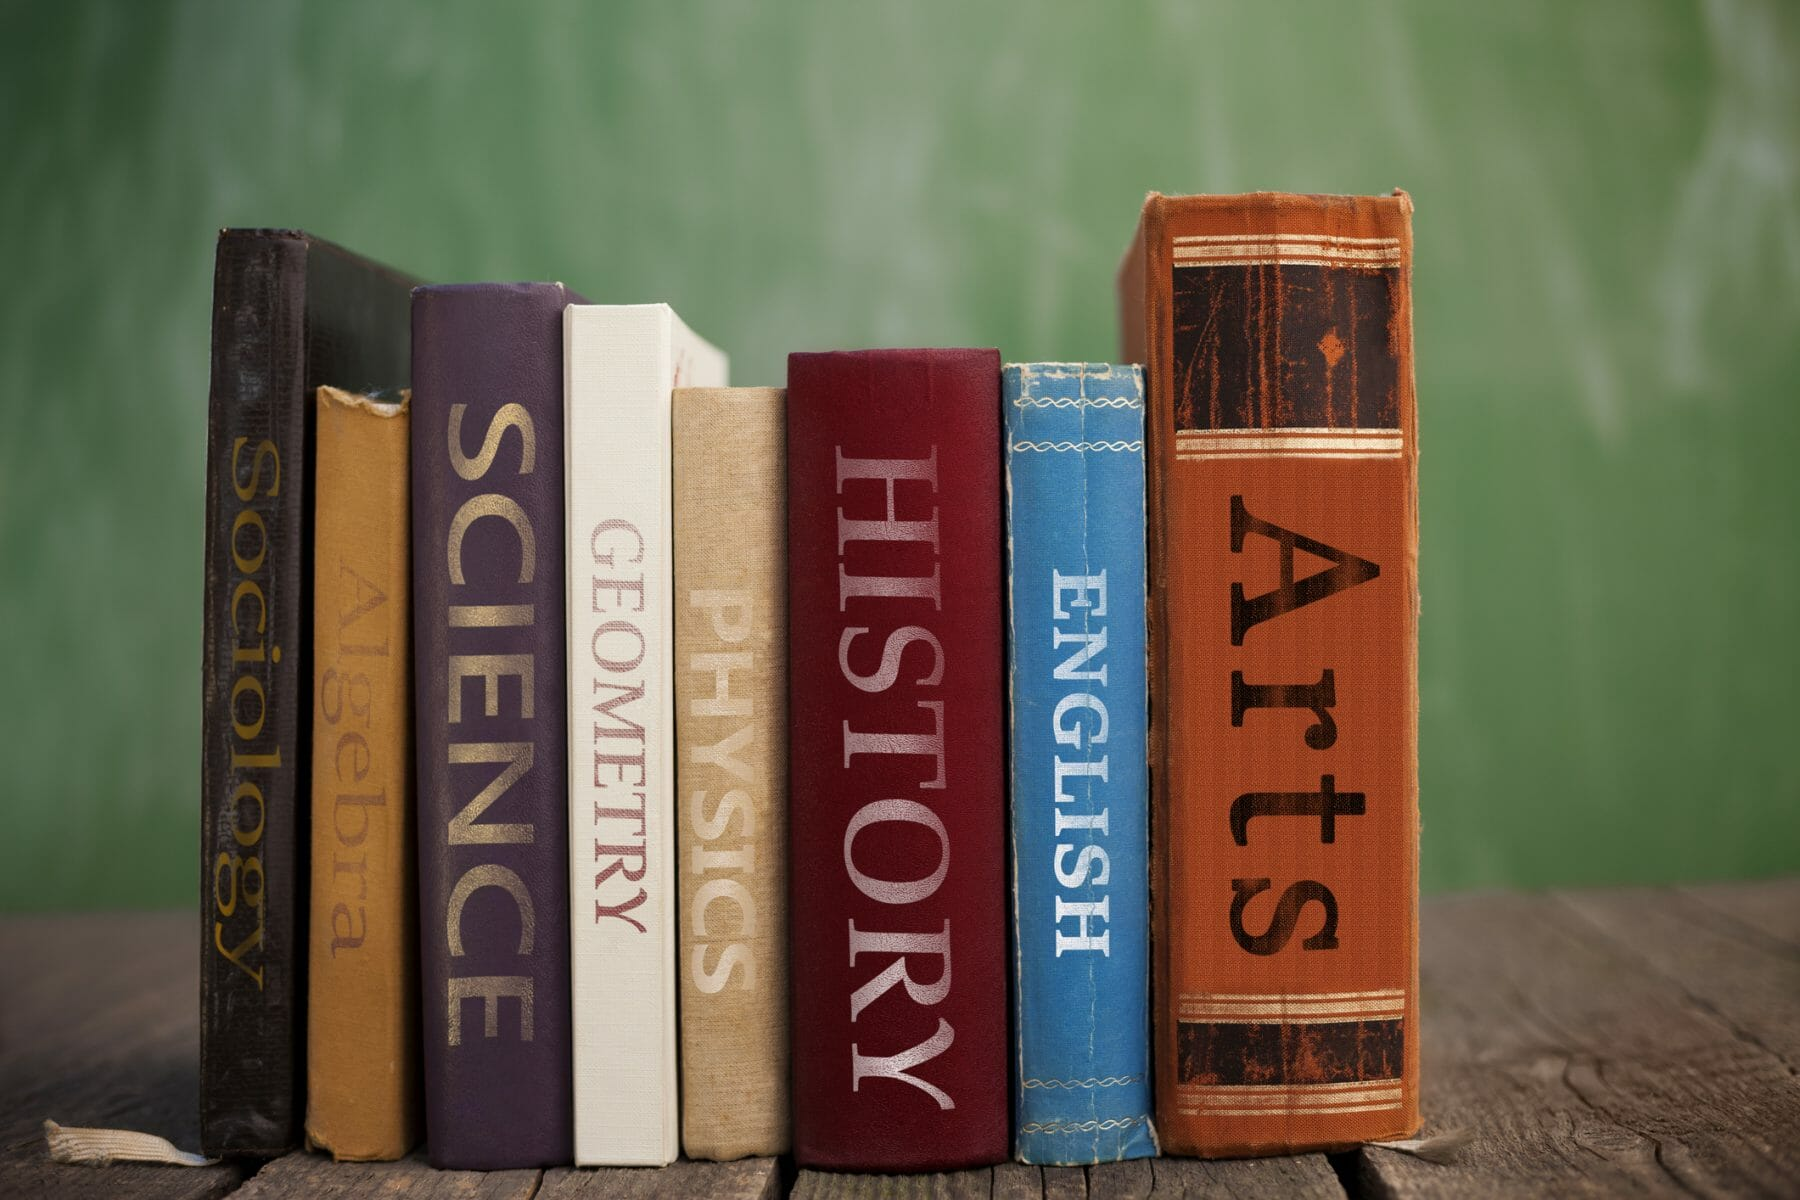 rising costs of textbooks A new cost at college: digital access codes  students have used a variety of strategies to manage costs,  to the rising cost of college textbooks.